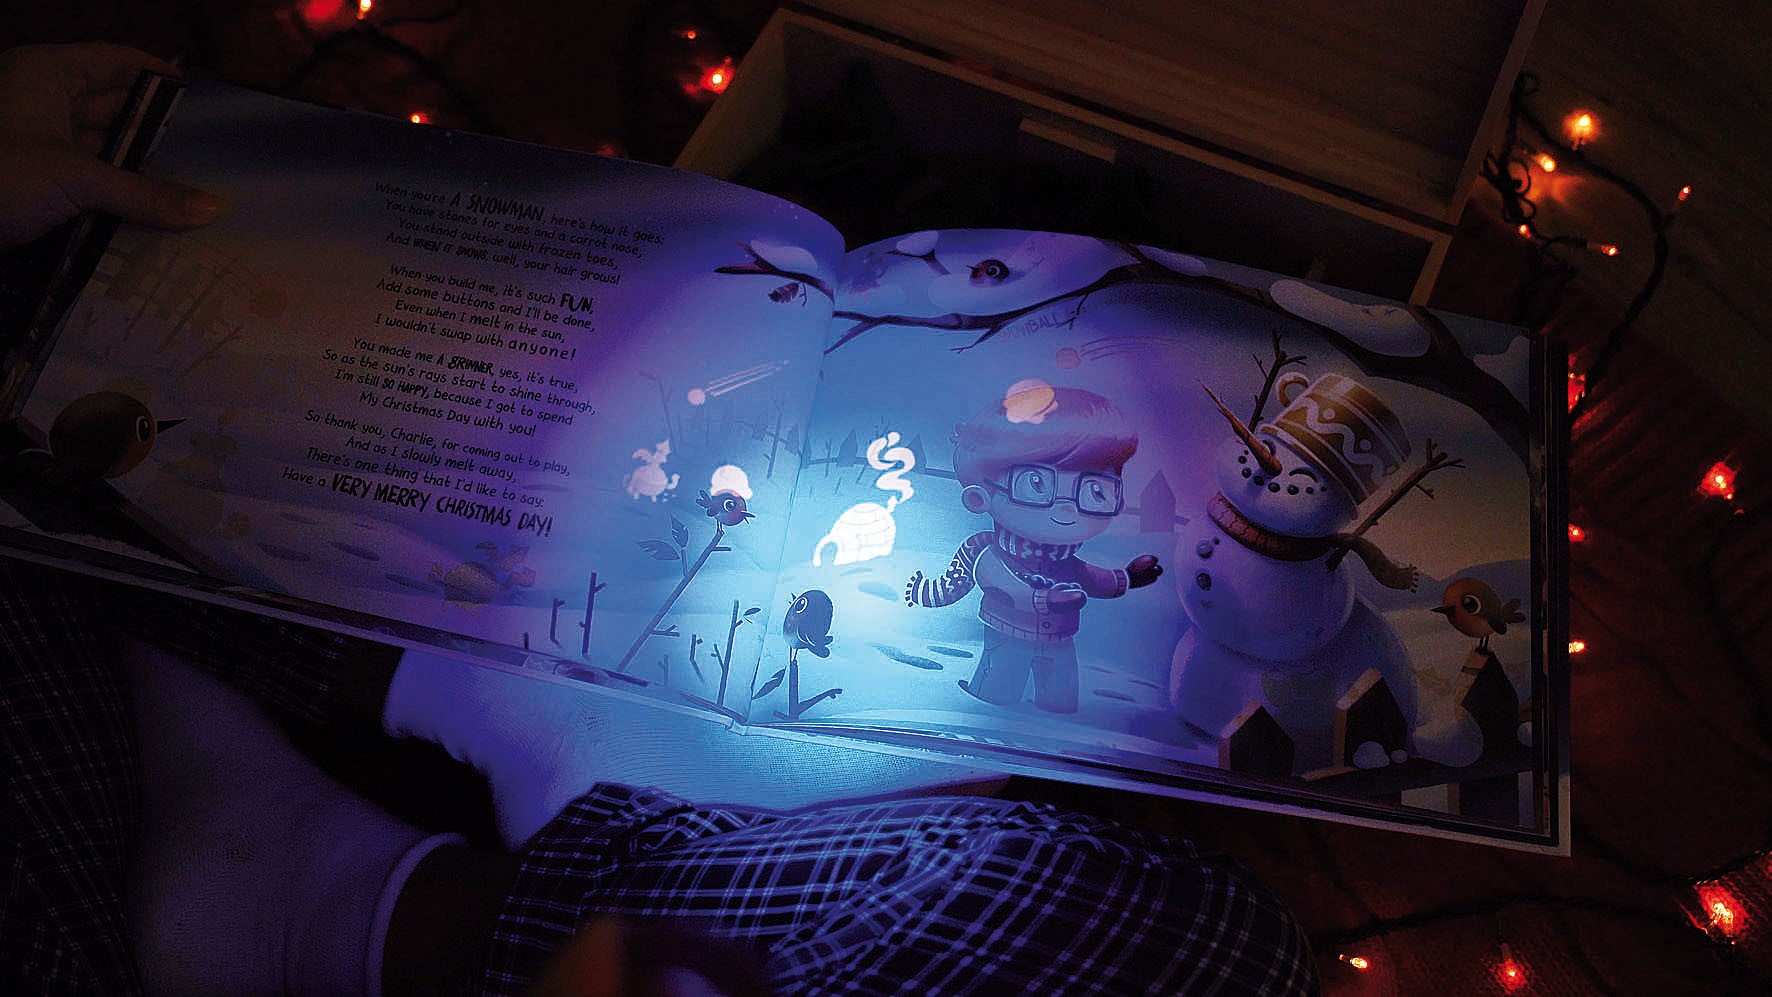 Glow in the dark: Personalized children's books